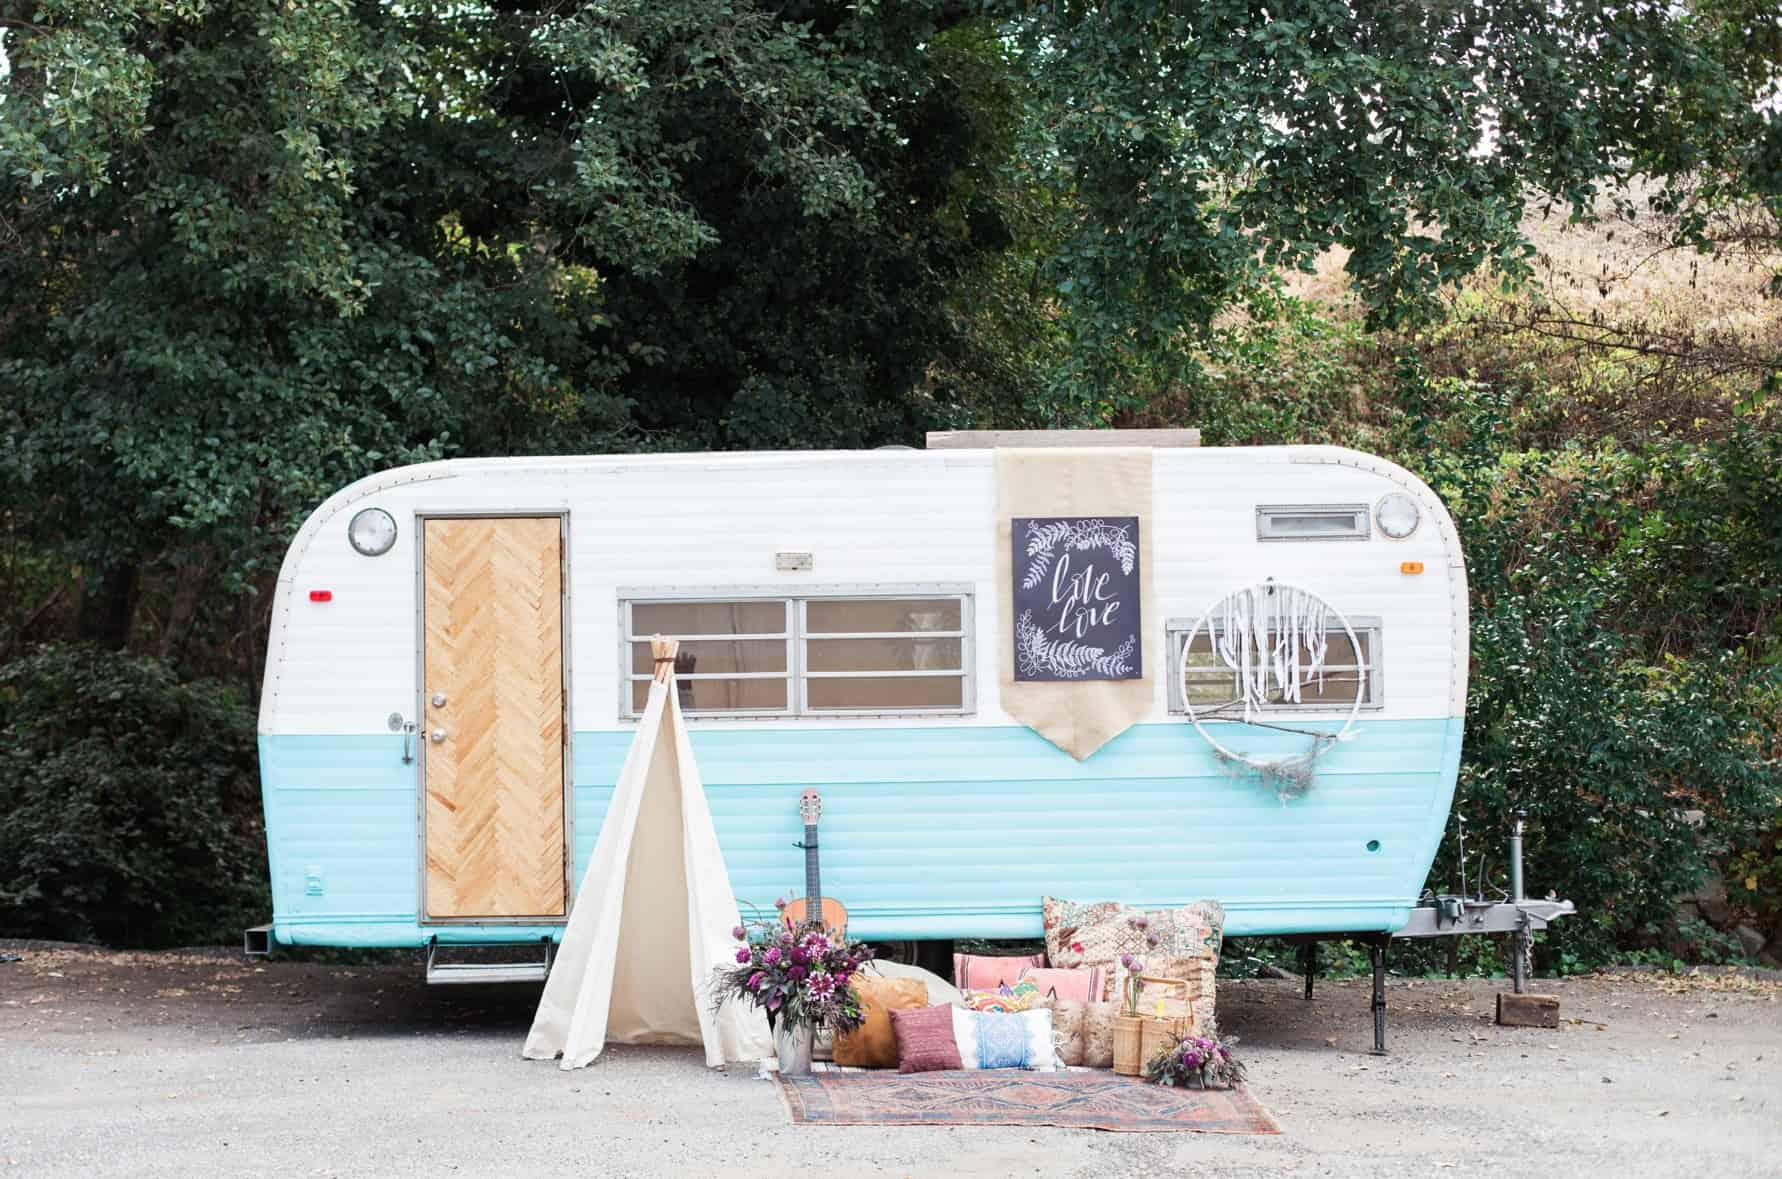 Unusual venues: Vintage trailer